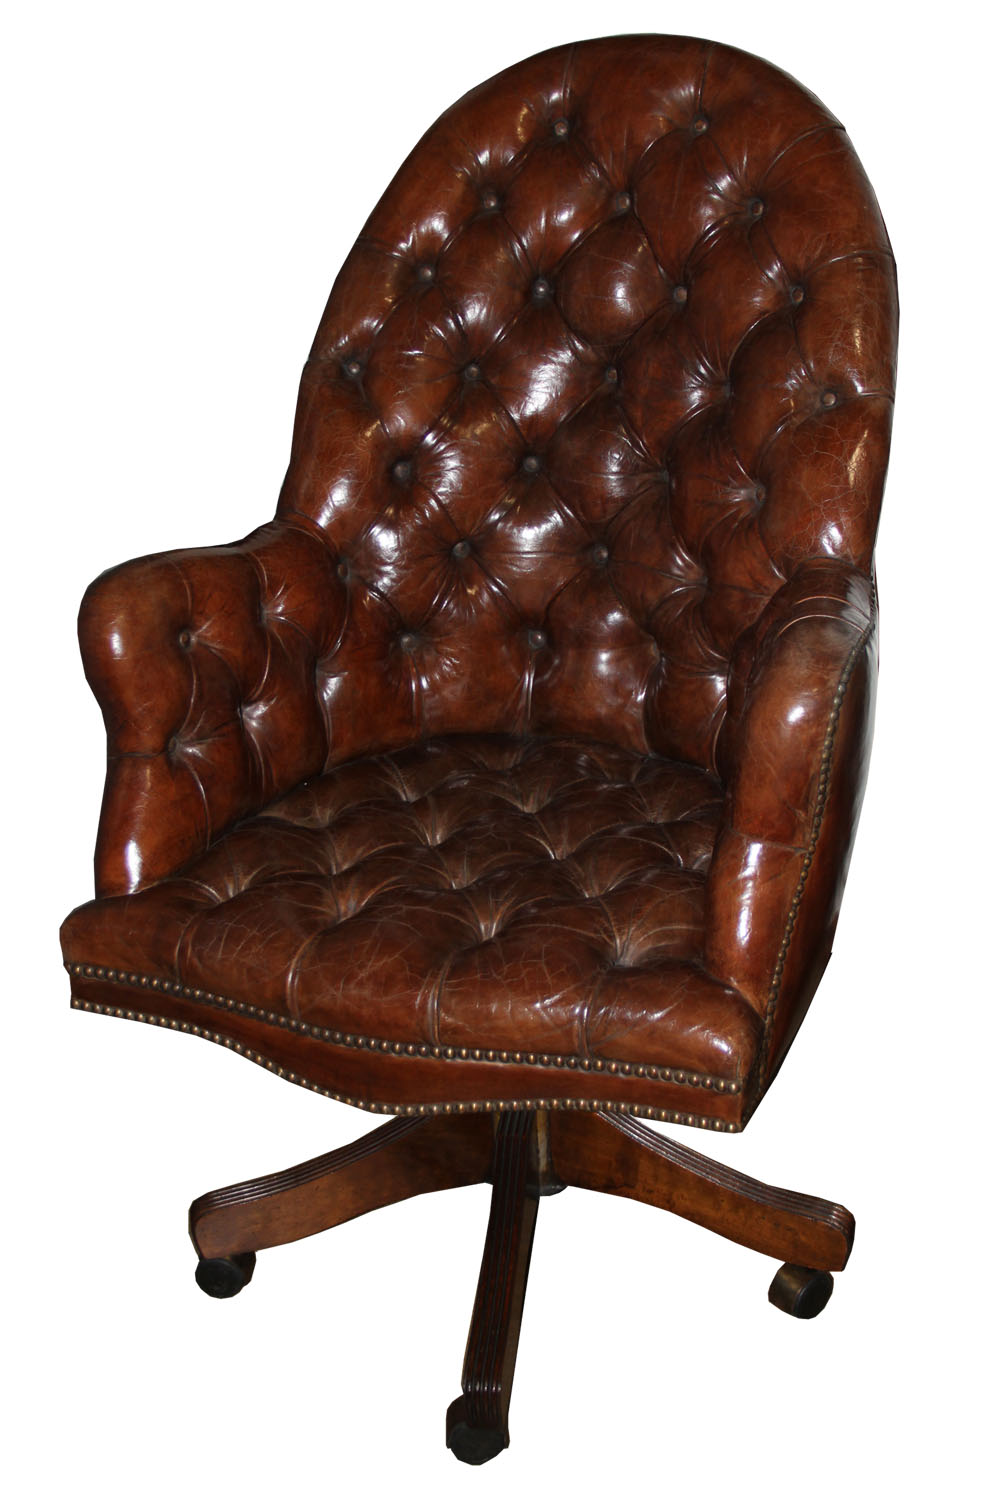 From the Mariani Privé Custom Workshop, A Classic English Tufted and Adjustable Swivel Desk Chair No. 4466